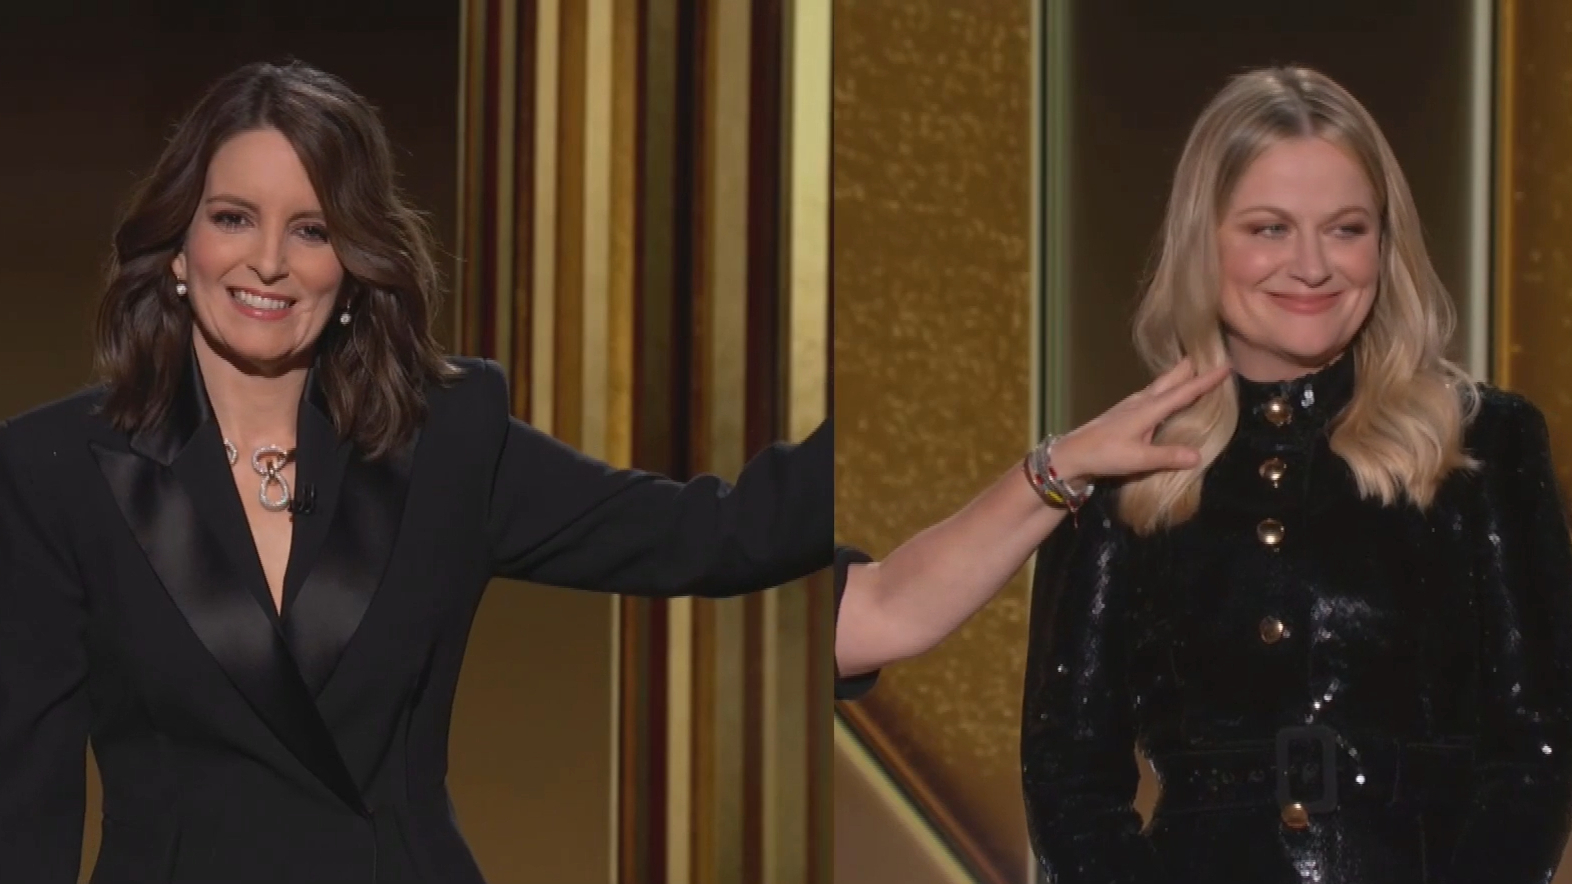 What you may have missed from controversial Golden Globes